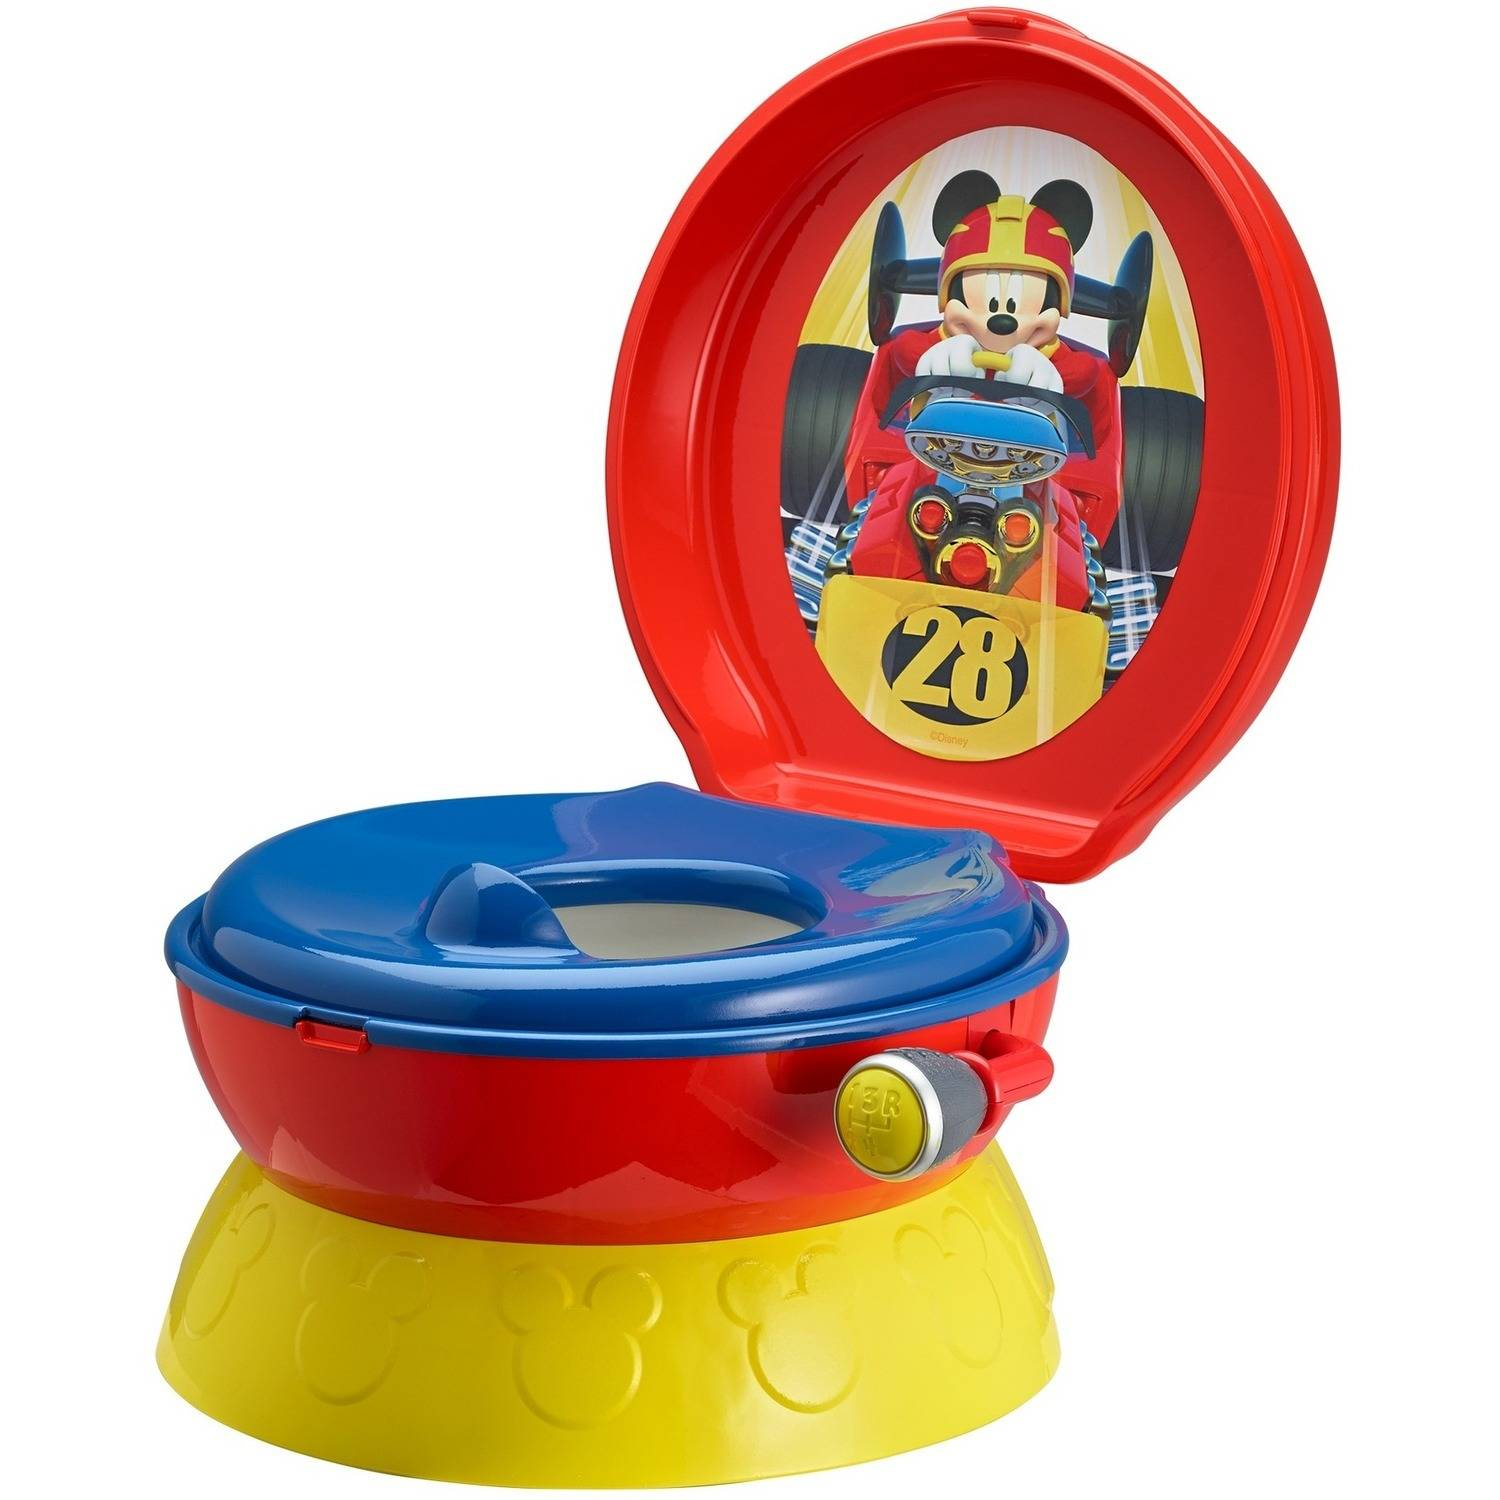 The First Years Celebration Potty System Featuring Disney's Mickey Mouse